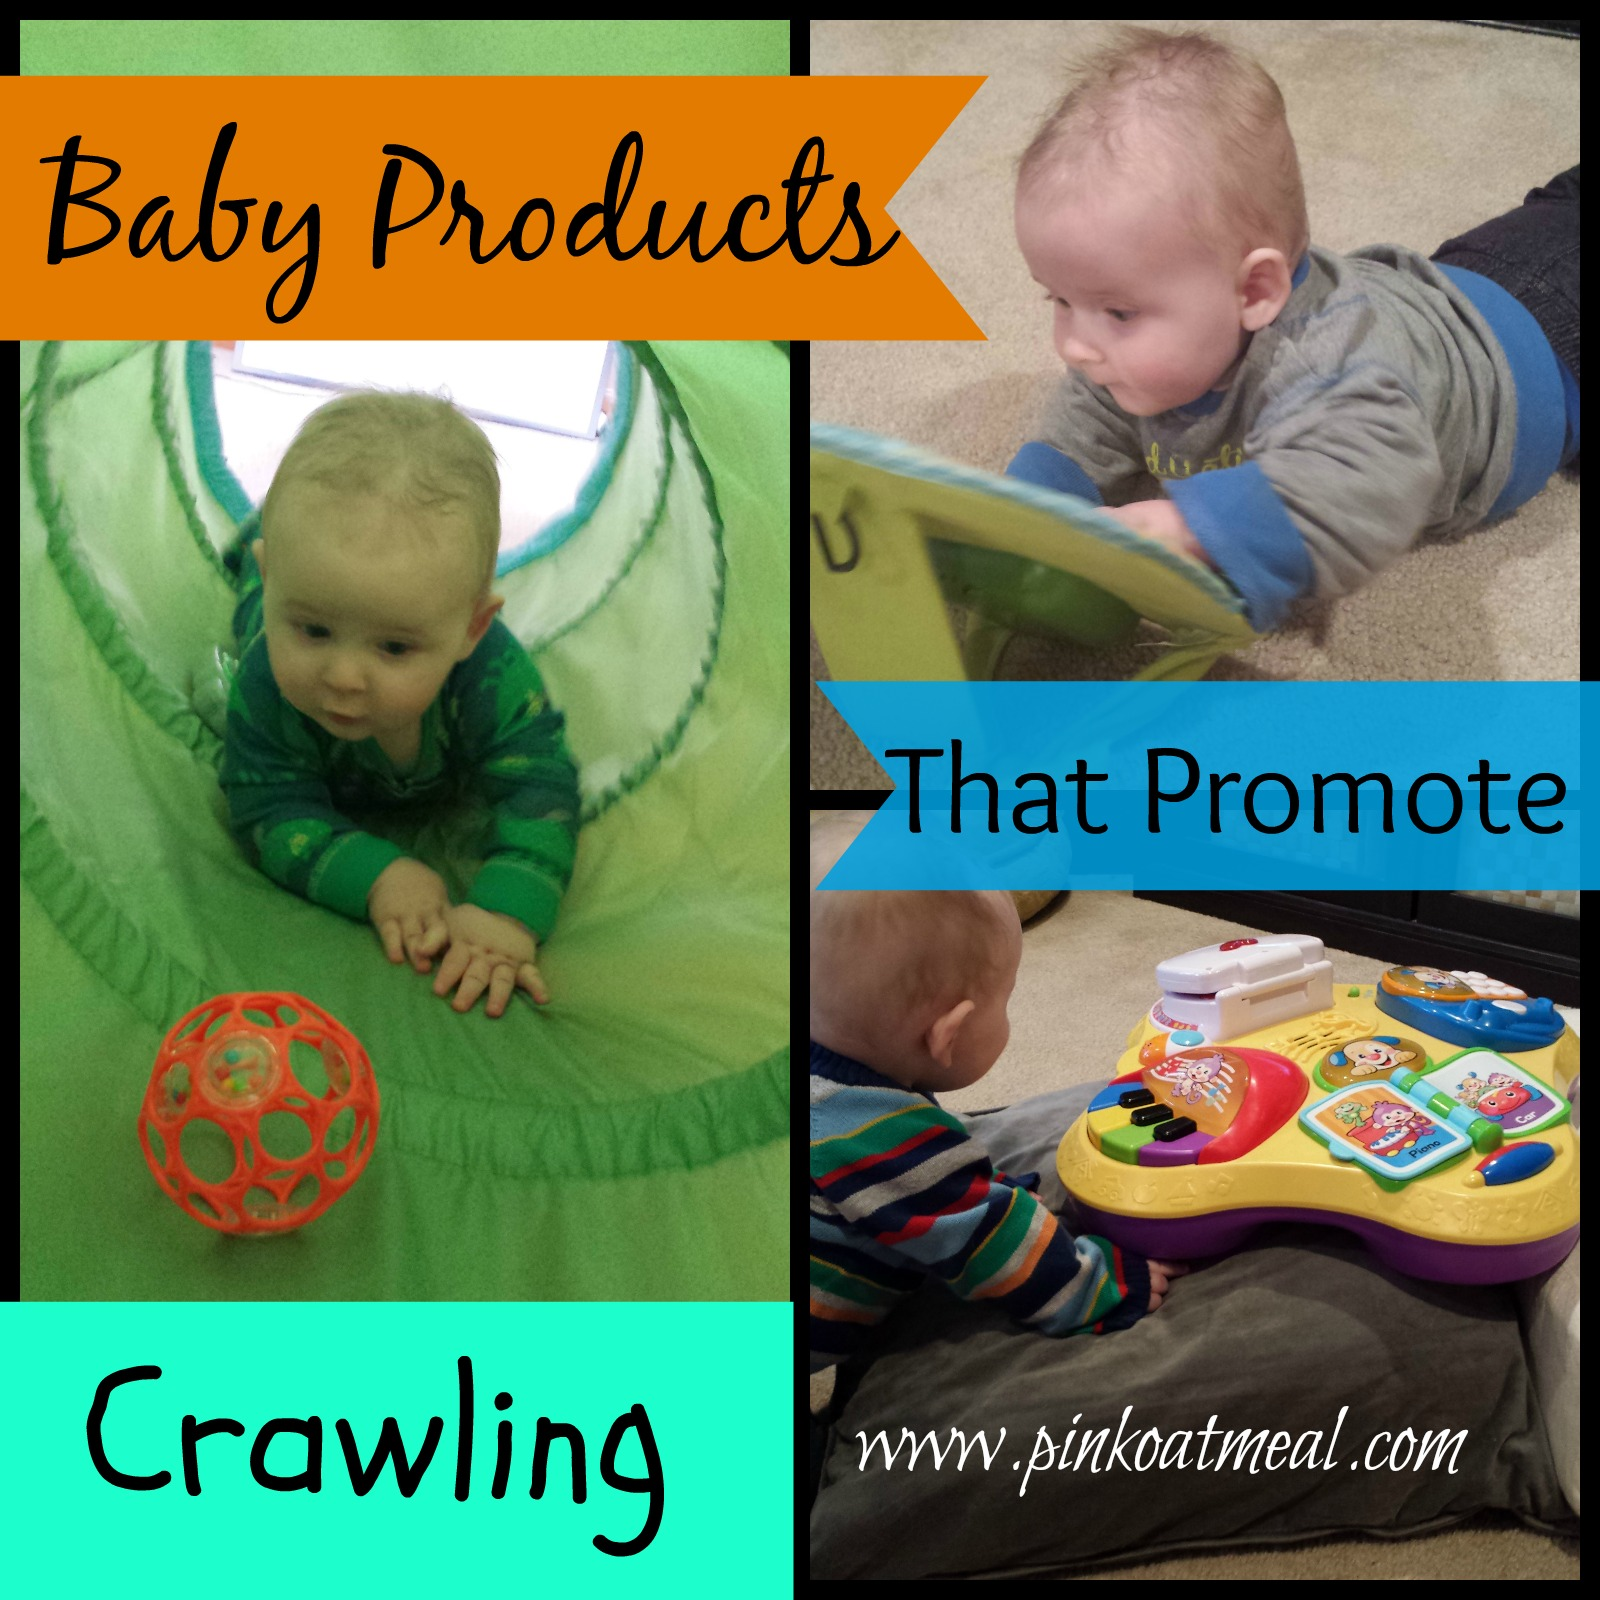 baby products that promote crawling | pink oatmeal